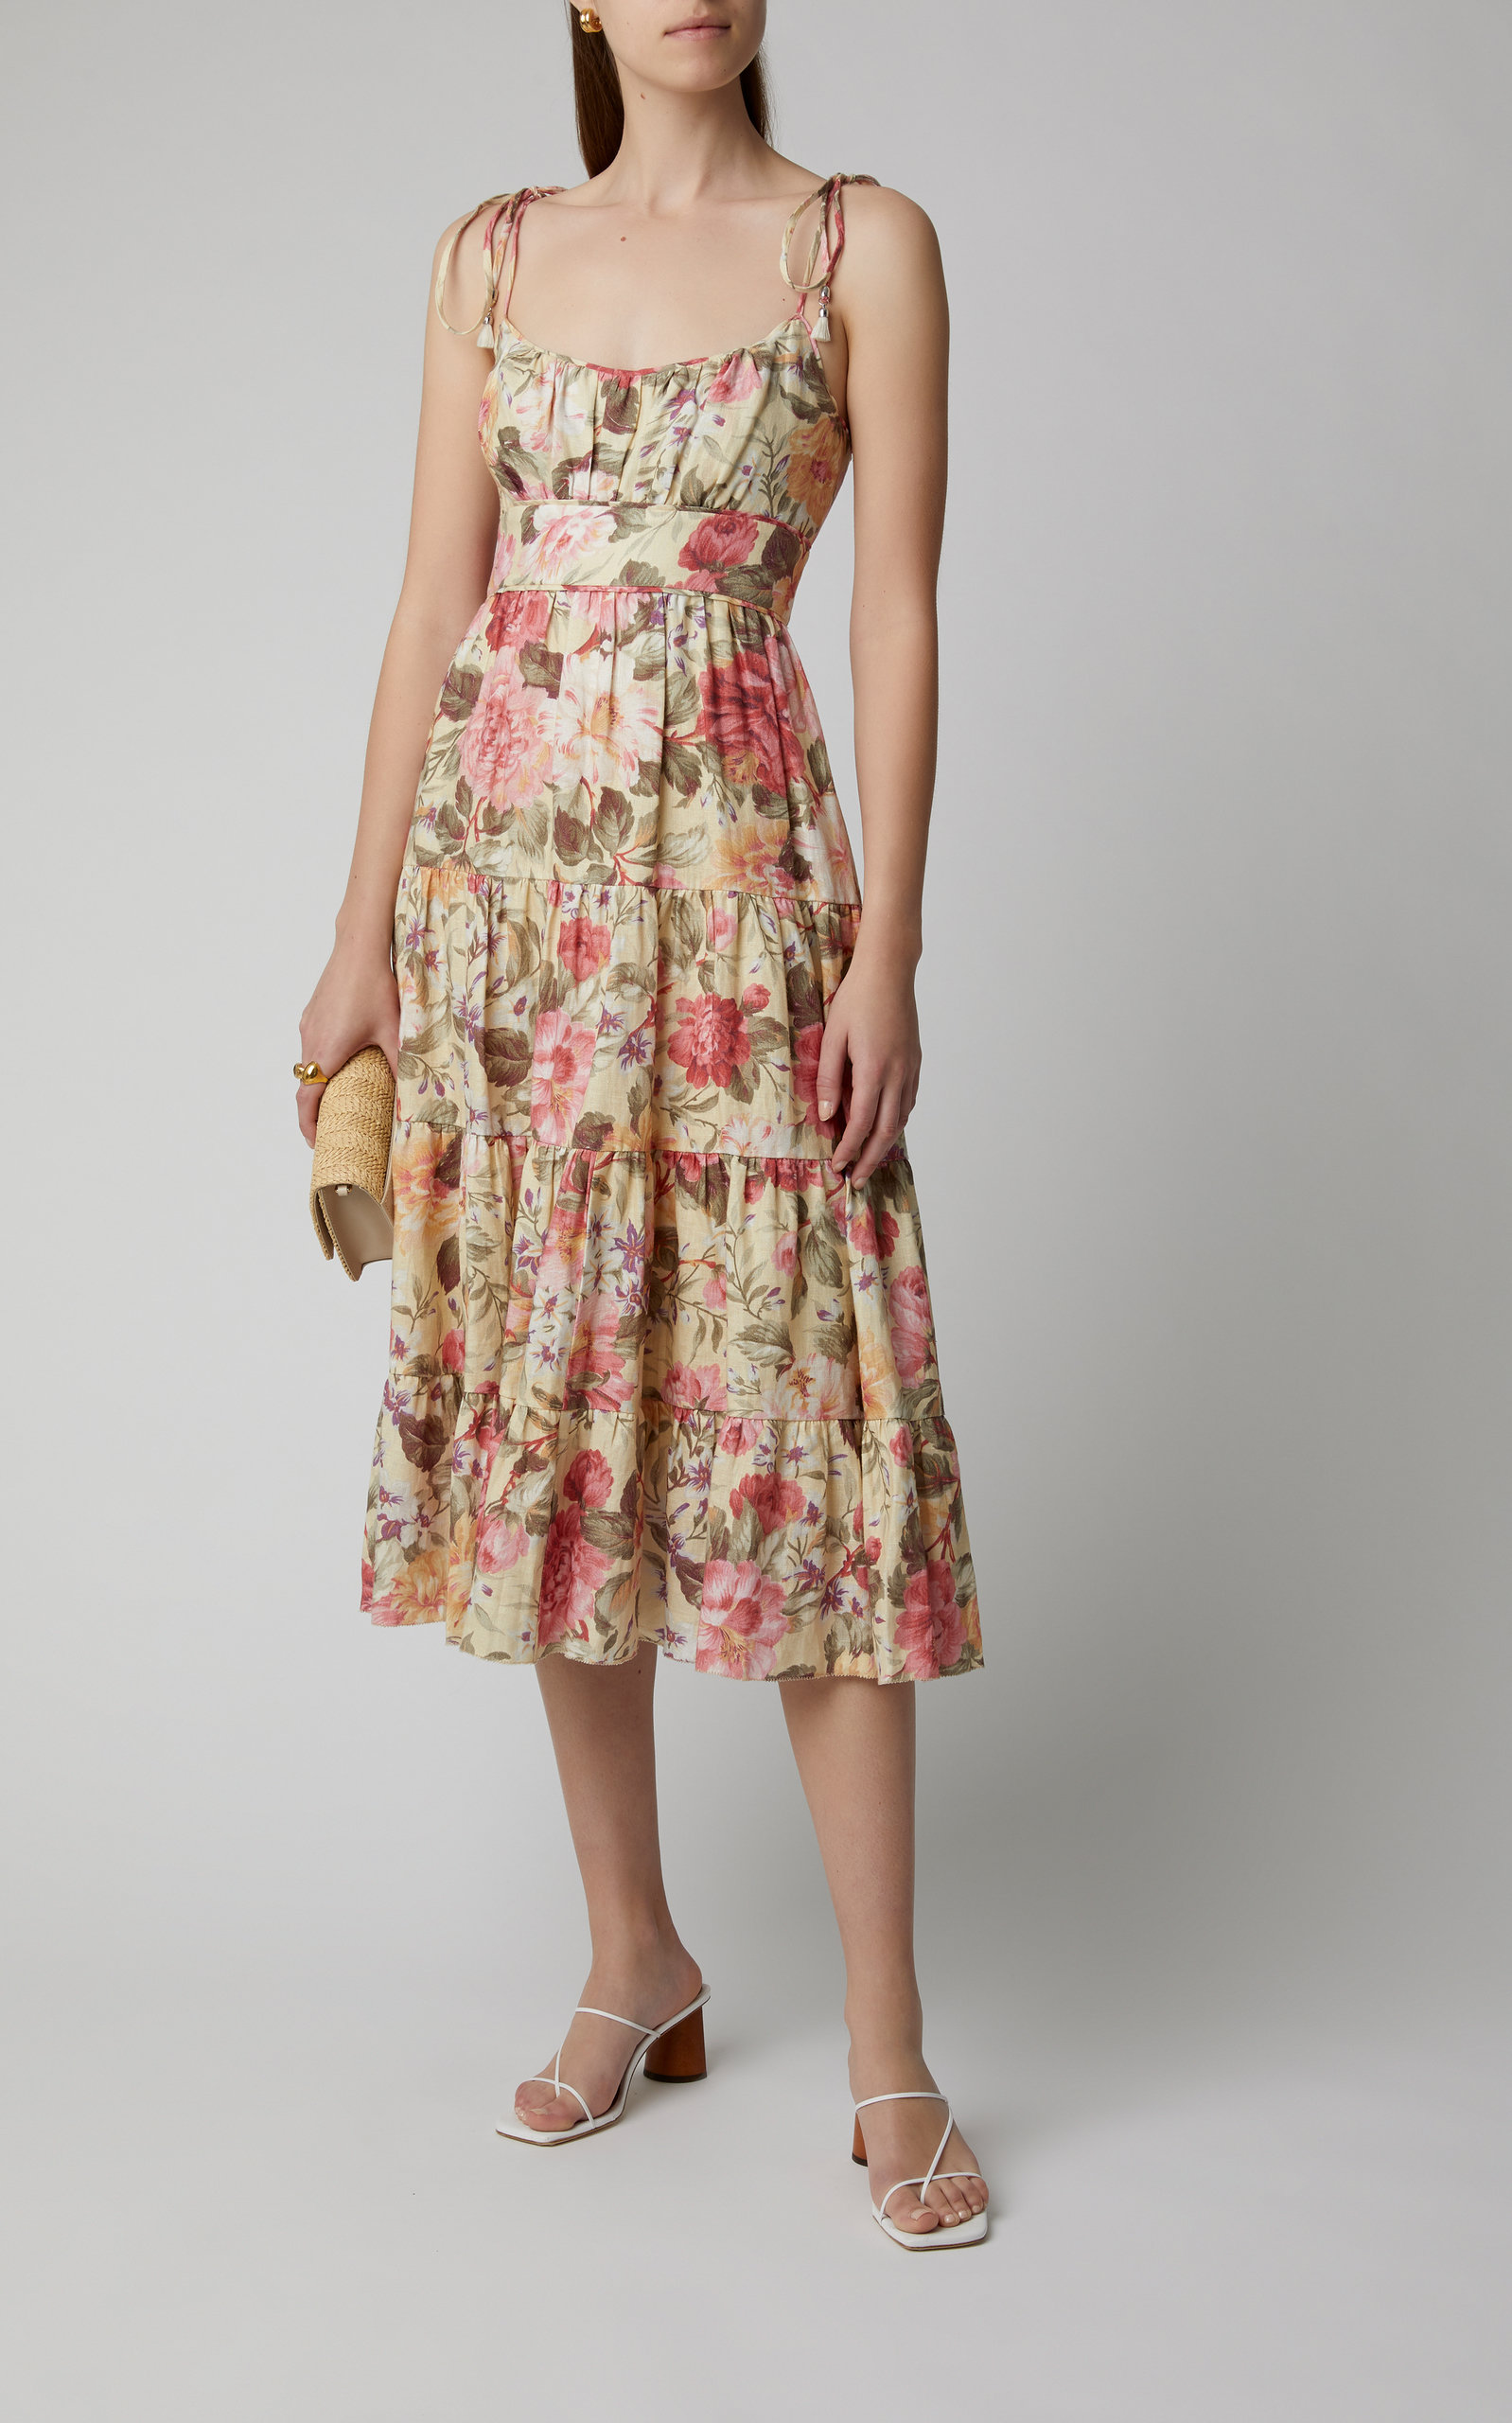 Click Product To Zoom In 2021 Country Chic Dresses Zimmerman Dress Linen Midi Dress [ 2560 x 1598 Pixel ]